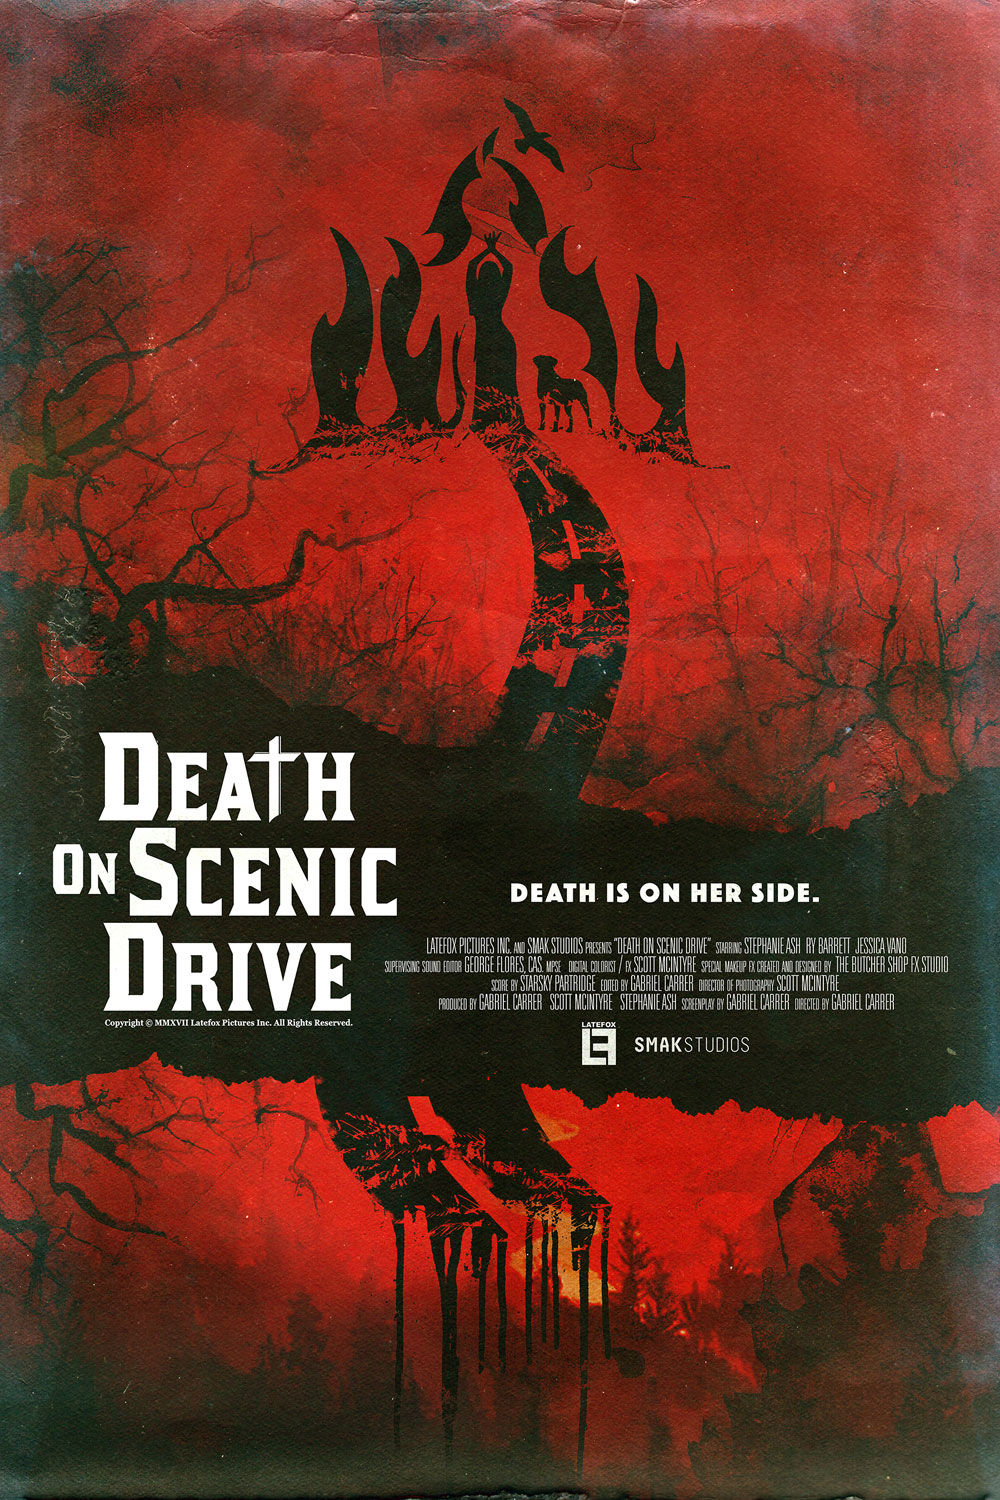 DEATH 24X36 01 - Exclusive Early Look at Three New Death on Scenic Drive Posters